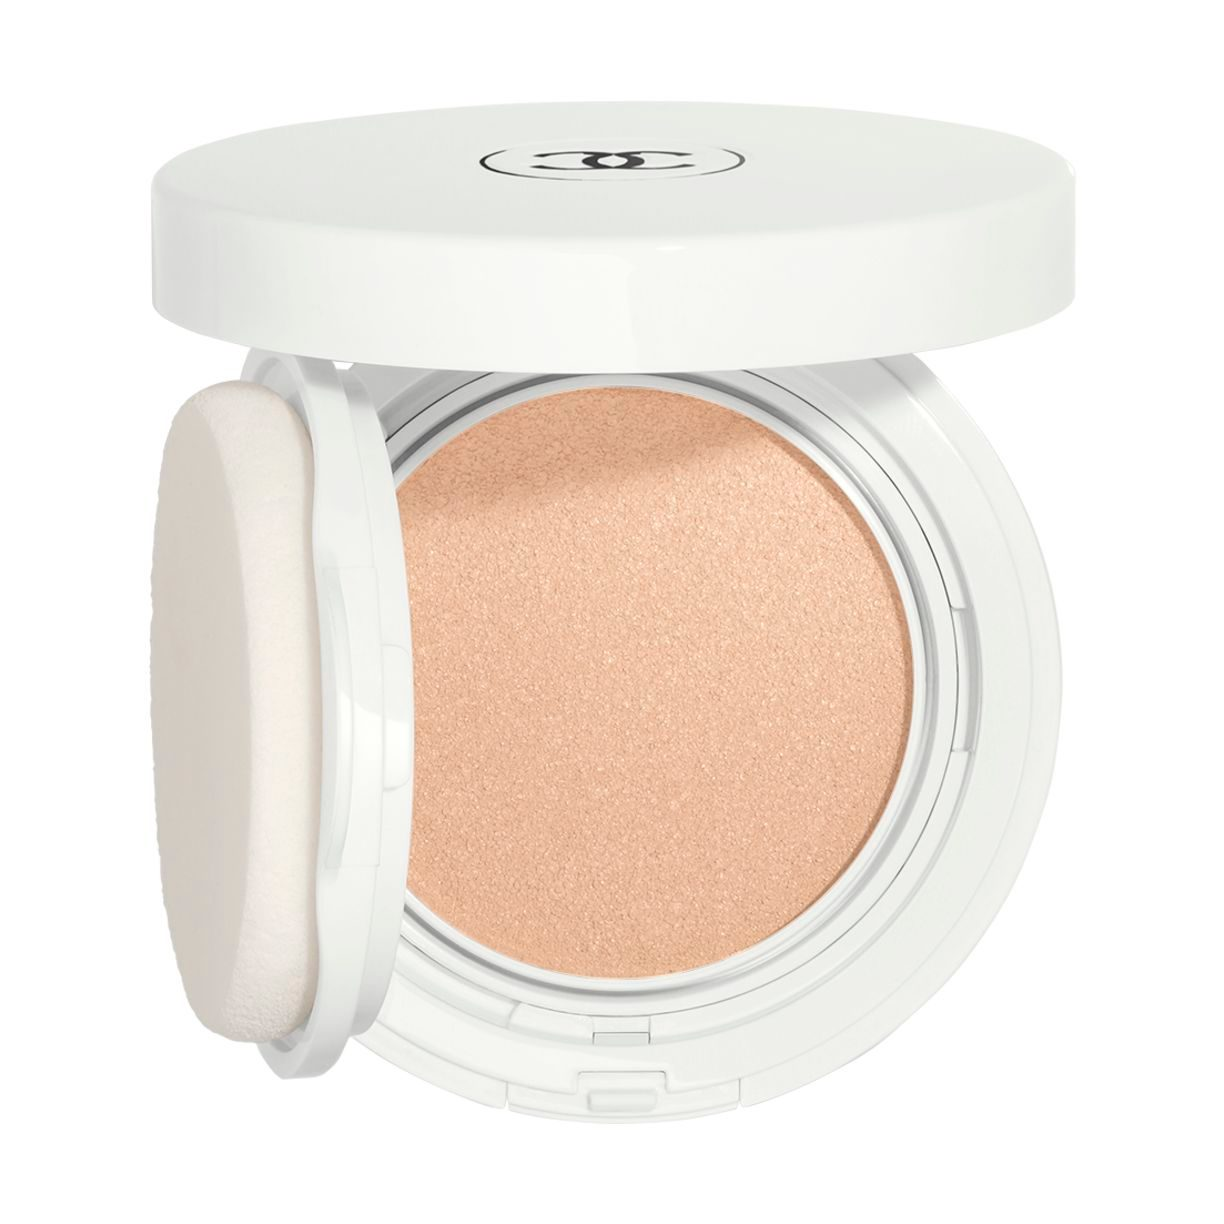 LE BLANC OIL-IN-CREAM COMPACT FOUNDATION WHITENING – THERMAL COMFORT SPF 40 / PA ++